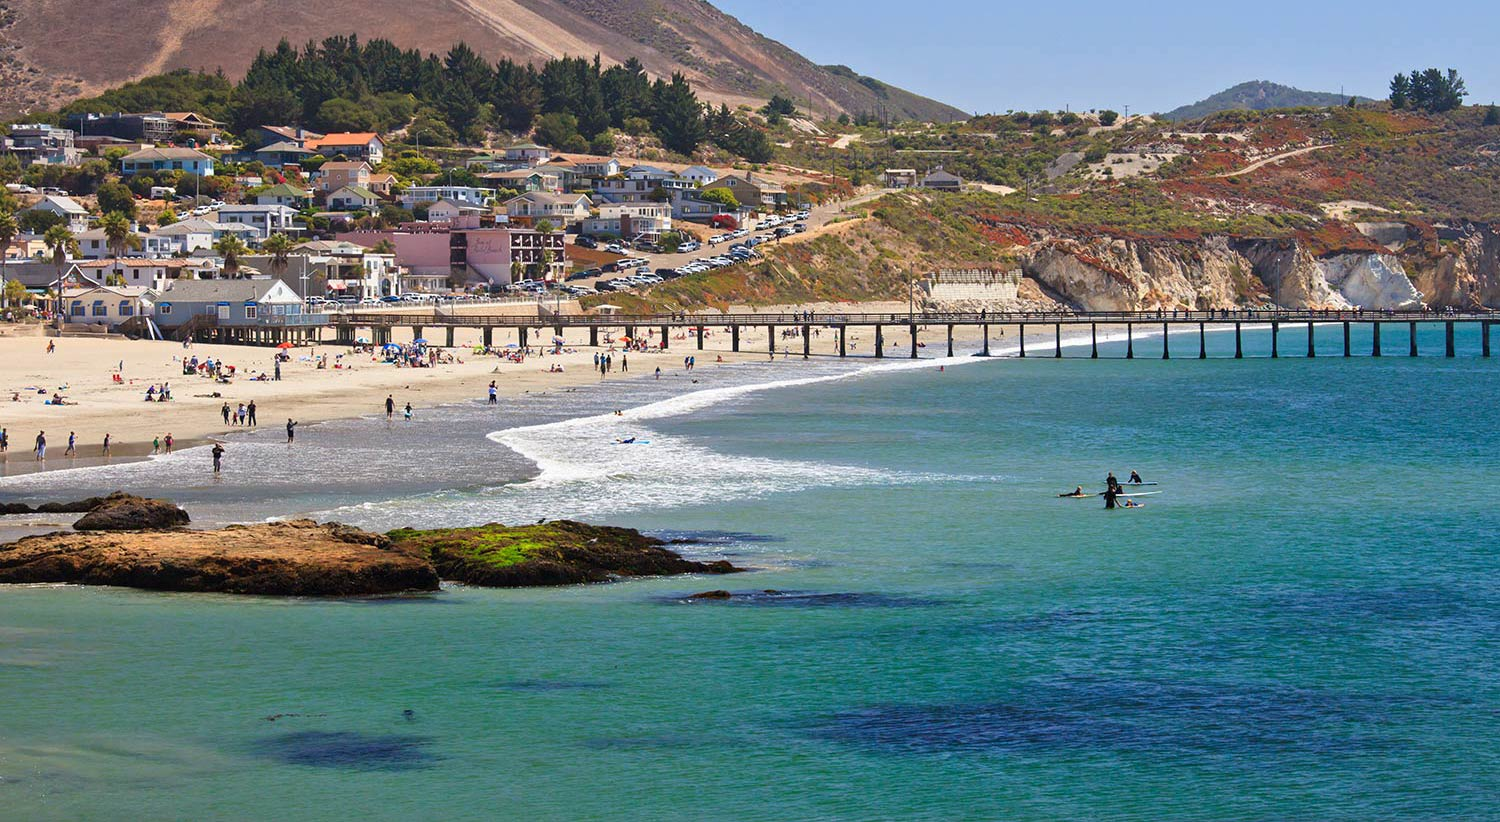 Blue-green water along the sandy coastline in San Luis Obispo